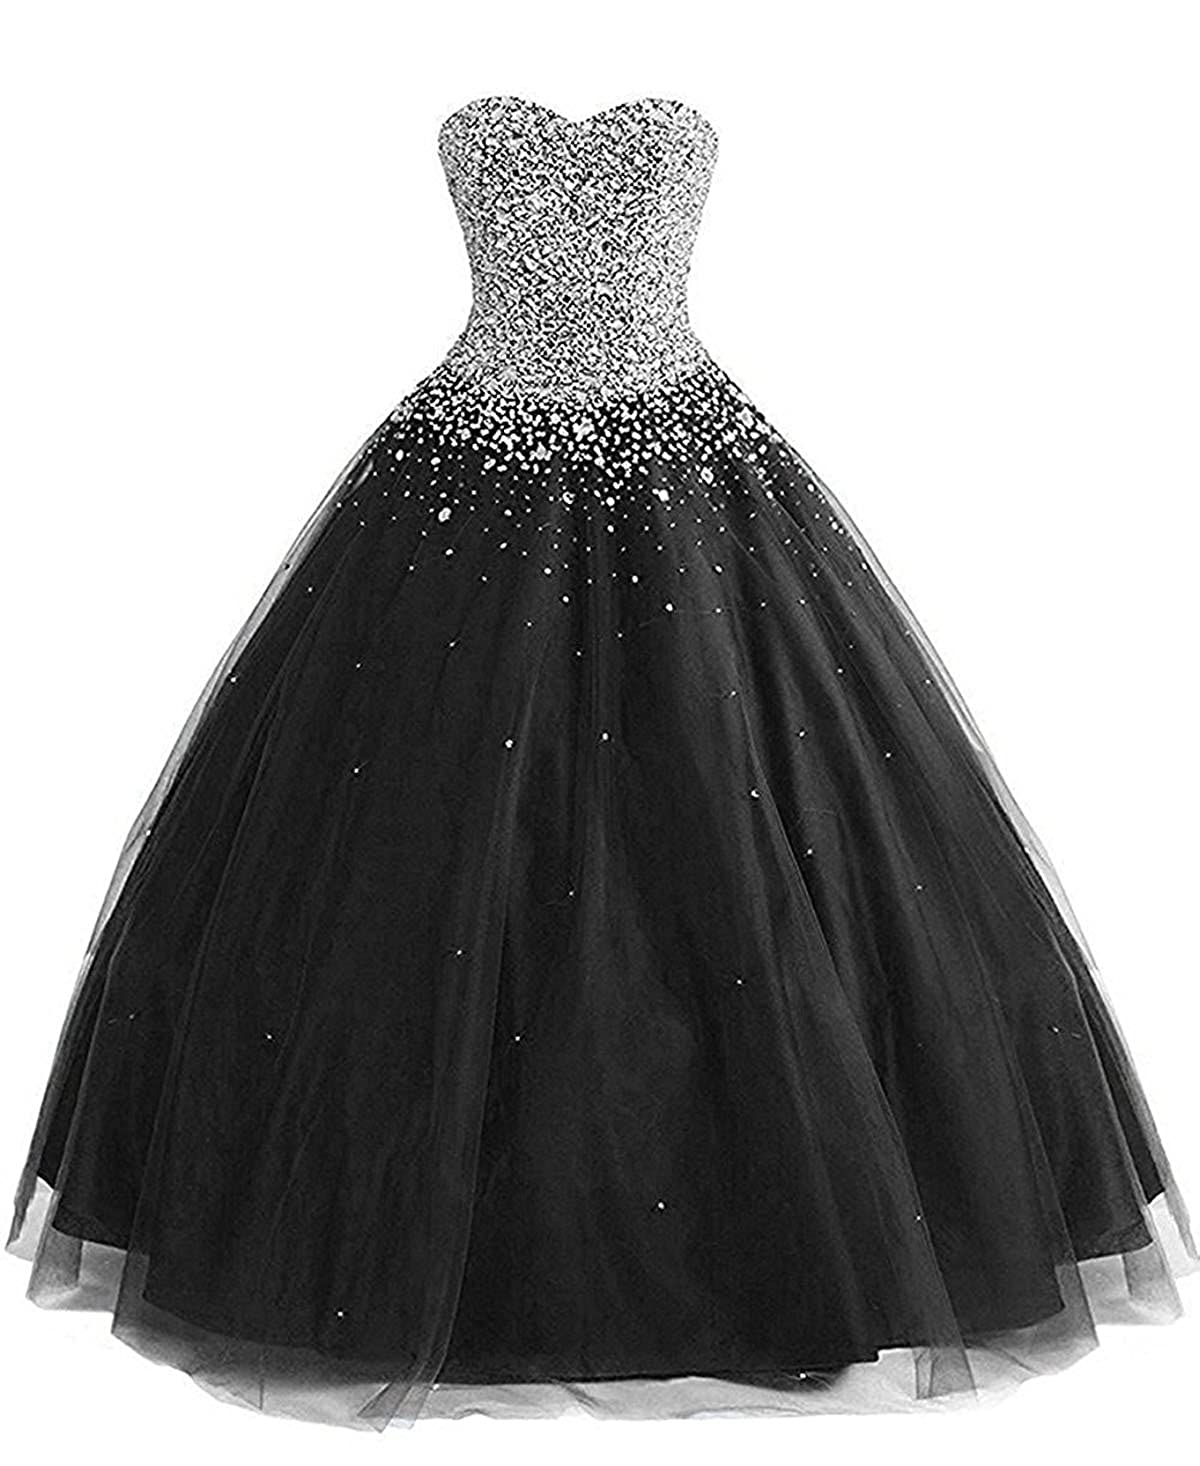 83b15ce75 Fit for Ball Gown Quinceanera Wedding Party Prom Evening 15 16 Birthday homecoming  dress, Evening party, Graduation dress, Ball, Dancing, Cocktail,Clubwear ...